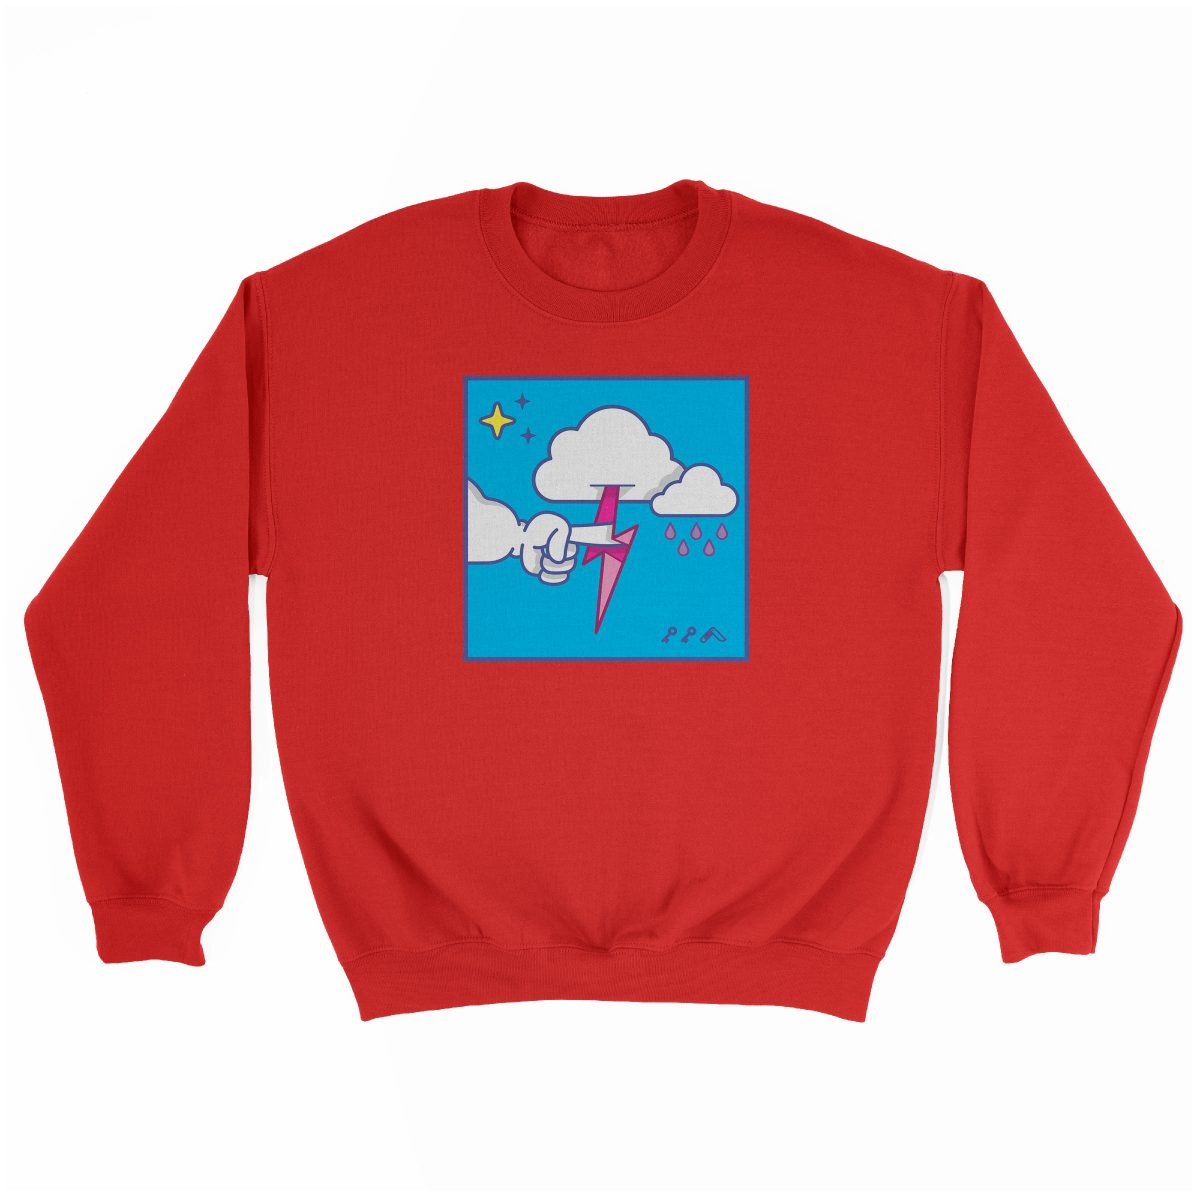 """""""MUTUAL CLOUDSENT"""" funny adult cartoon animation style sweatshirt in red at kikicutt.com"""